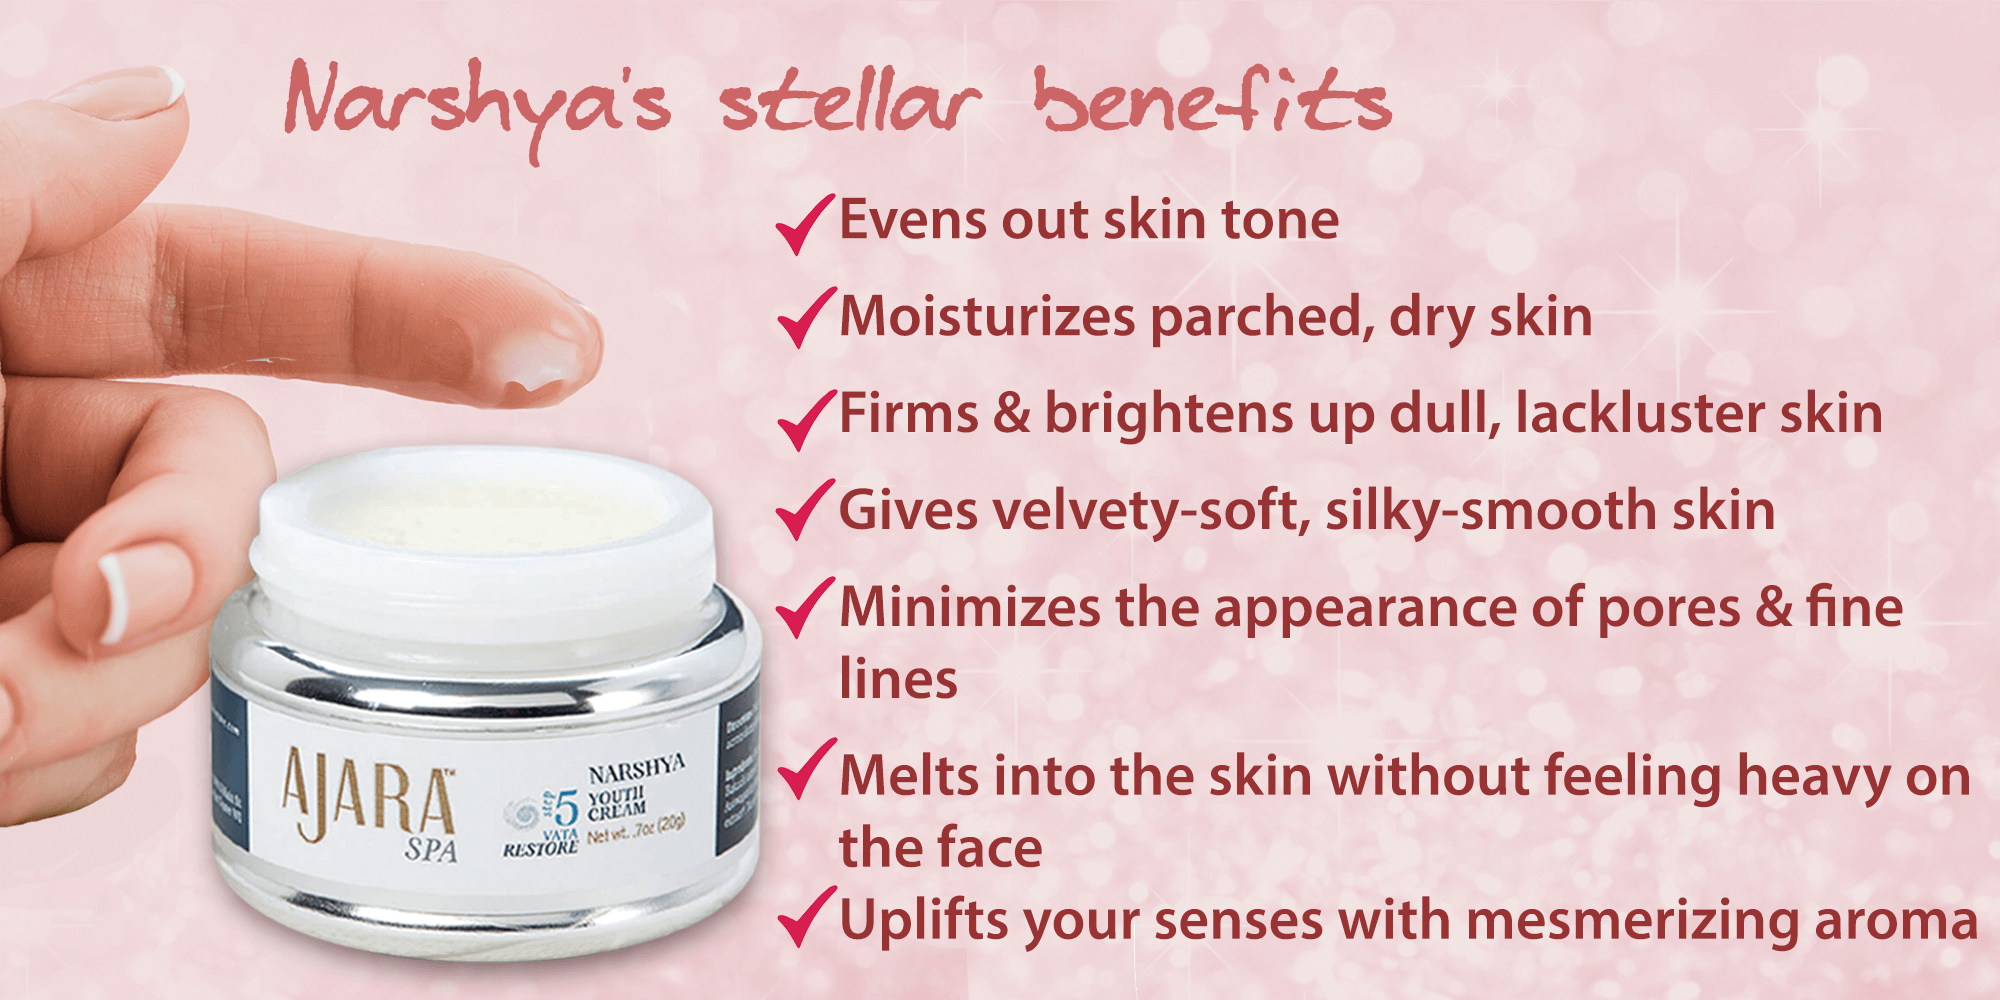 Minimize the appearance of fine lines & pores with Narshya Youth Cream